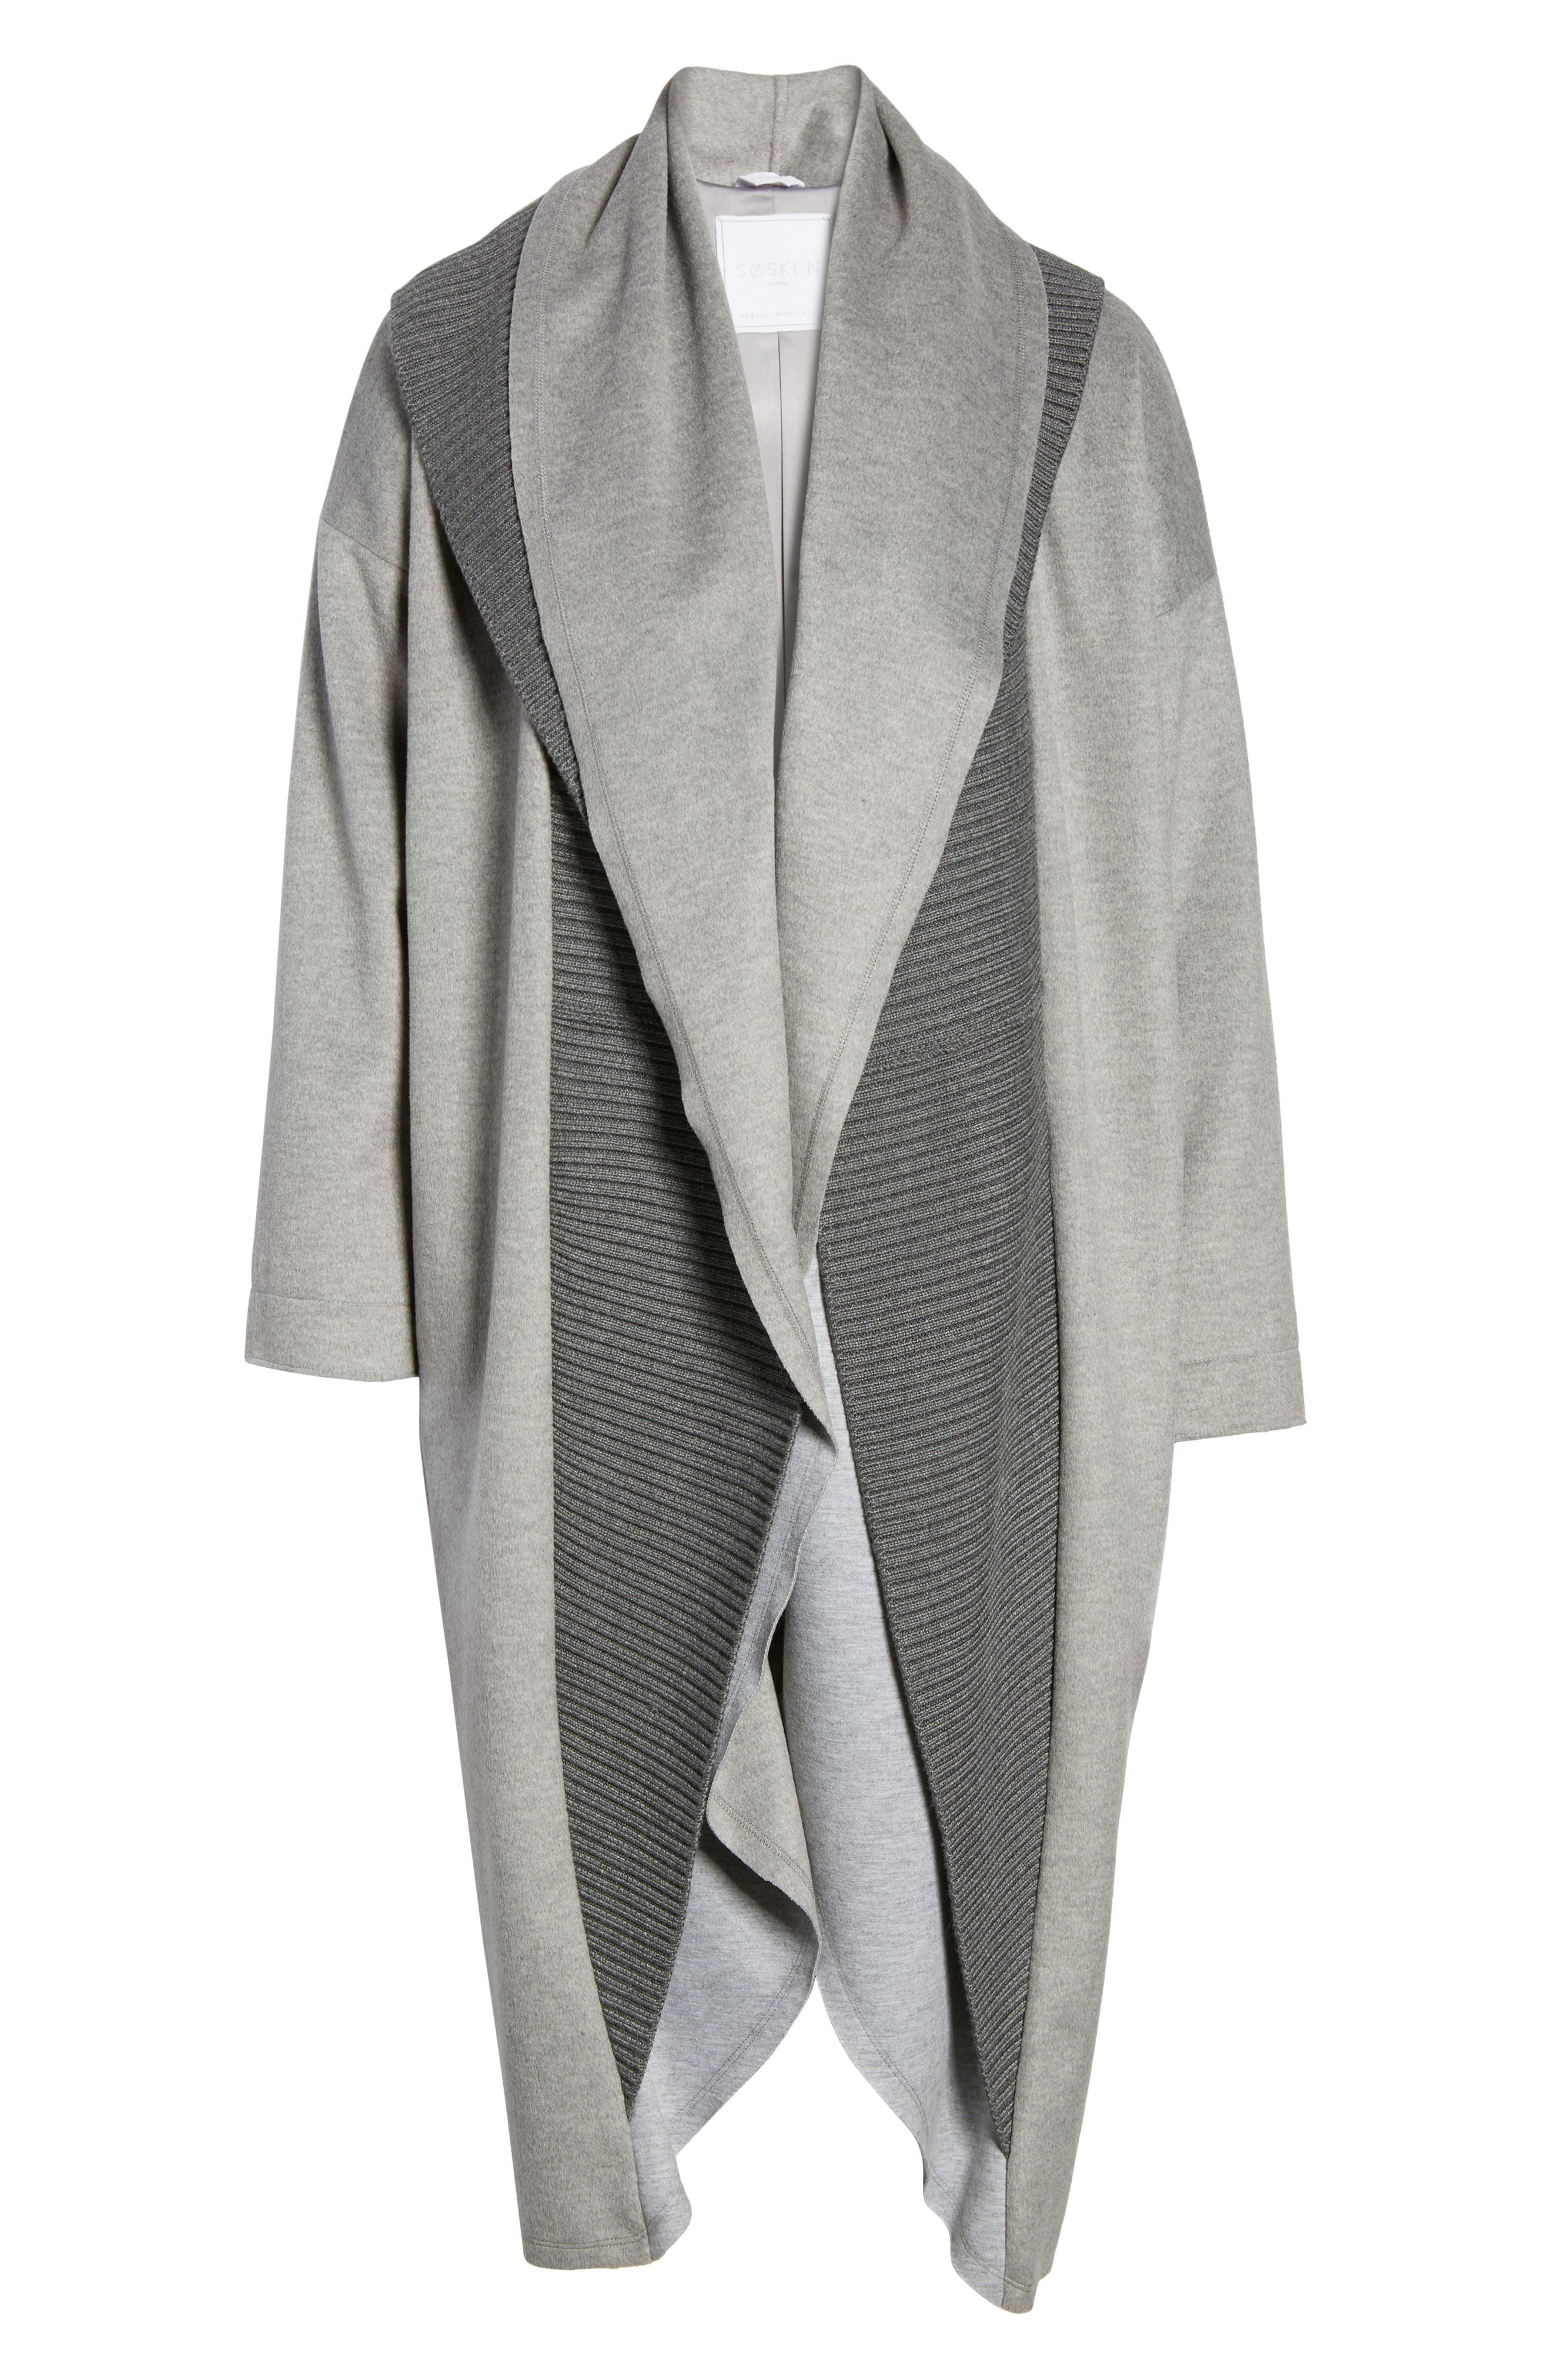 Brandy Stone Grey Duster Coat,                             Alternate thumbnail 6, color,                             Stone Grey